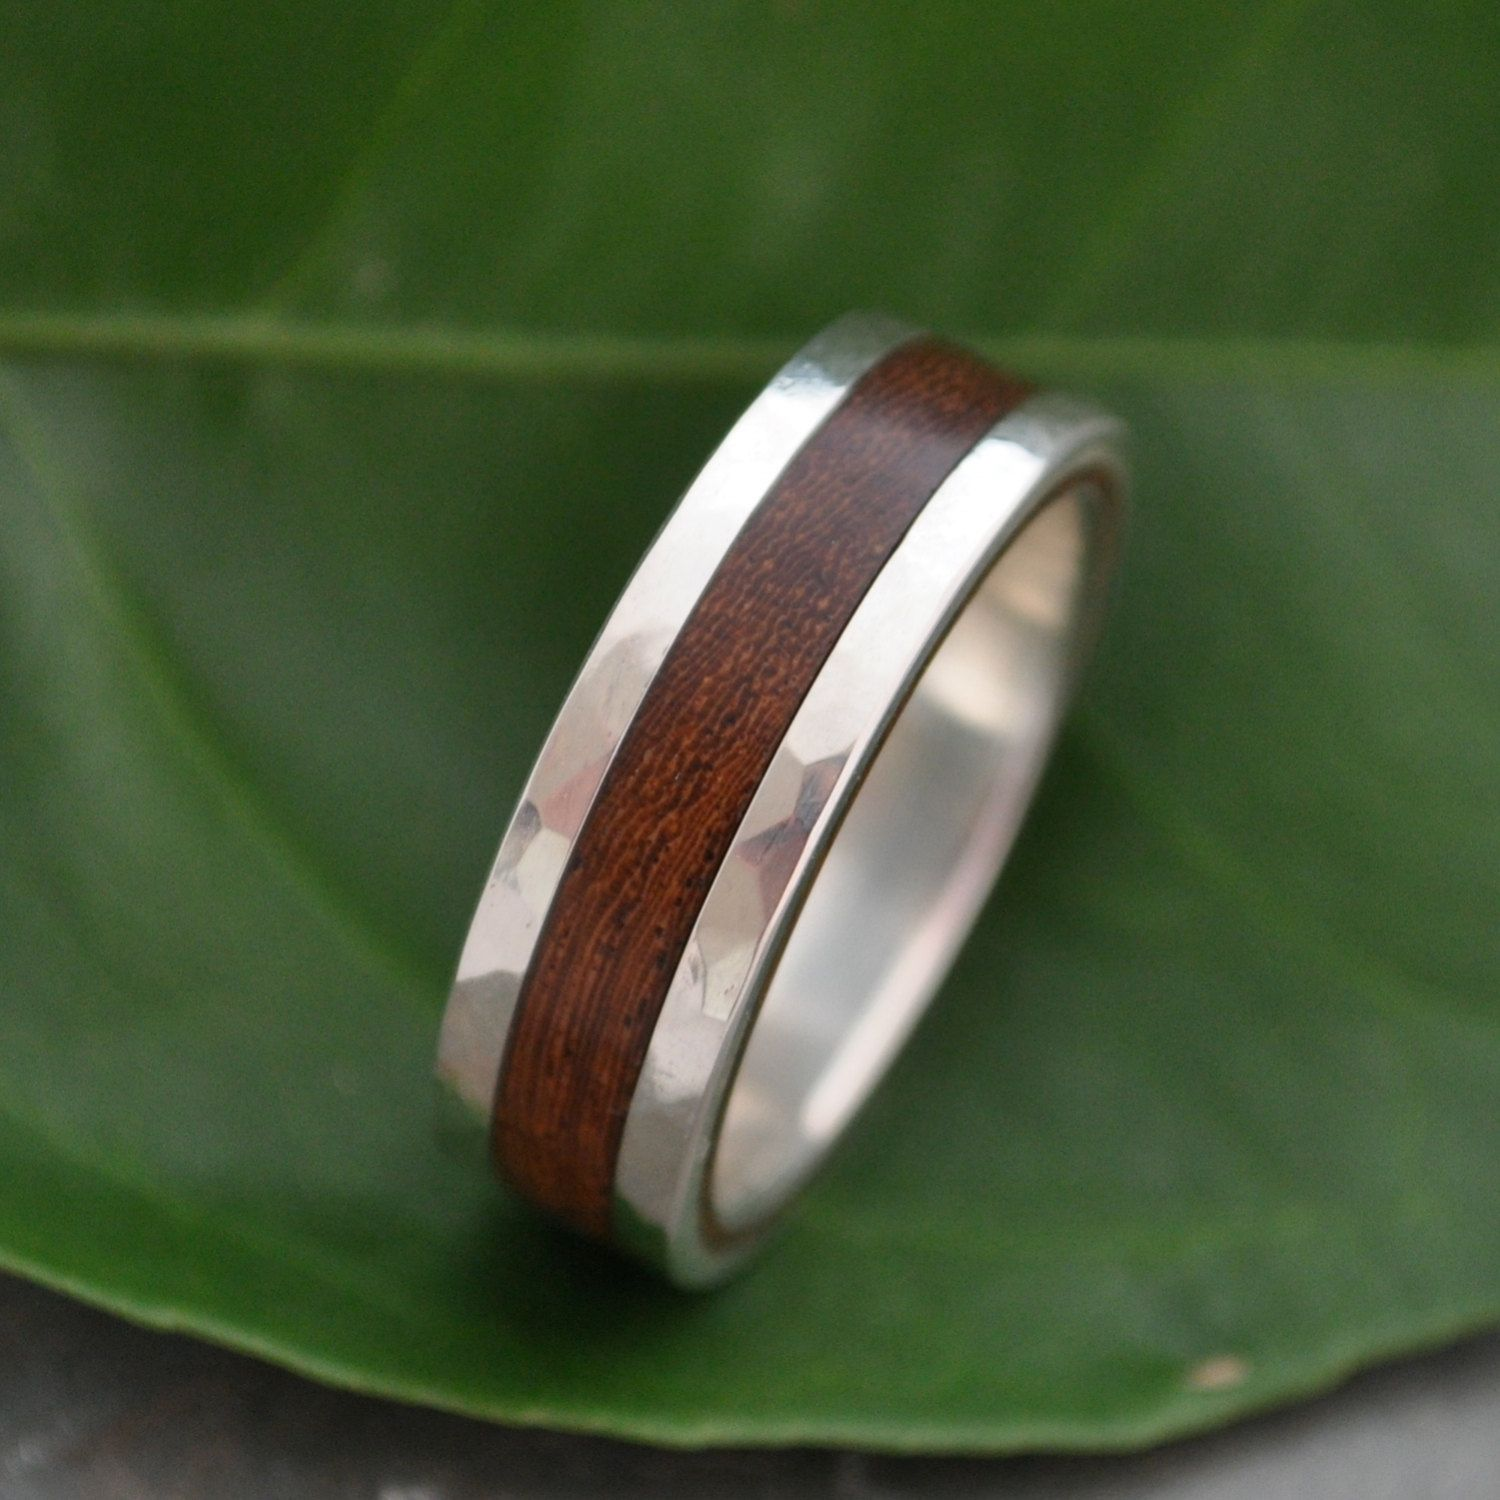 where friendly engagement rings sustainable shop eco an wedding it put ethical and ring on to